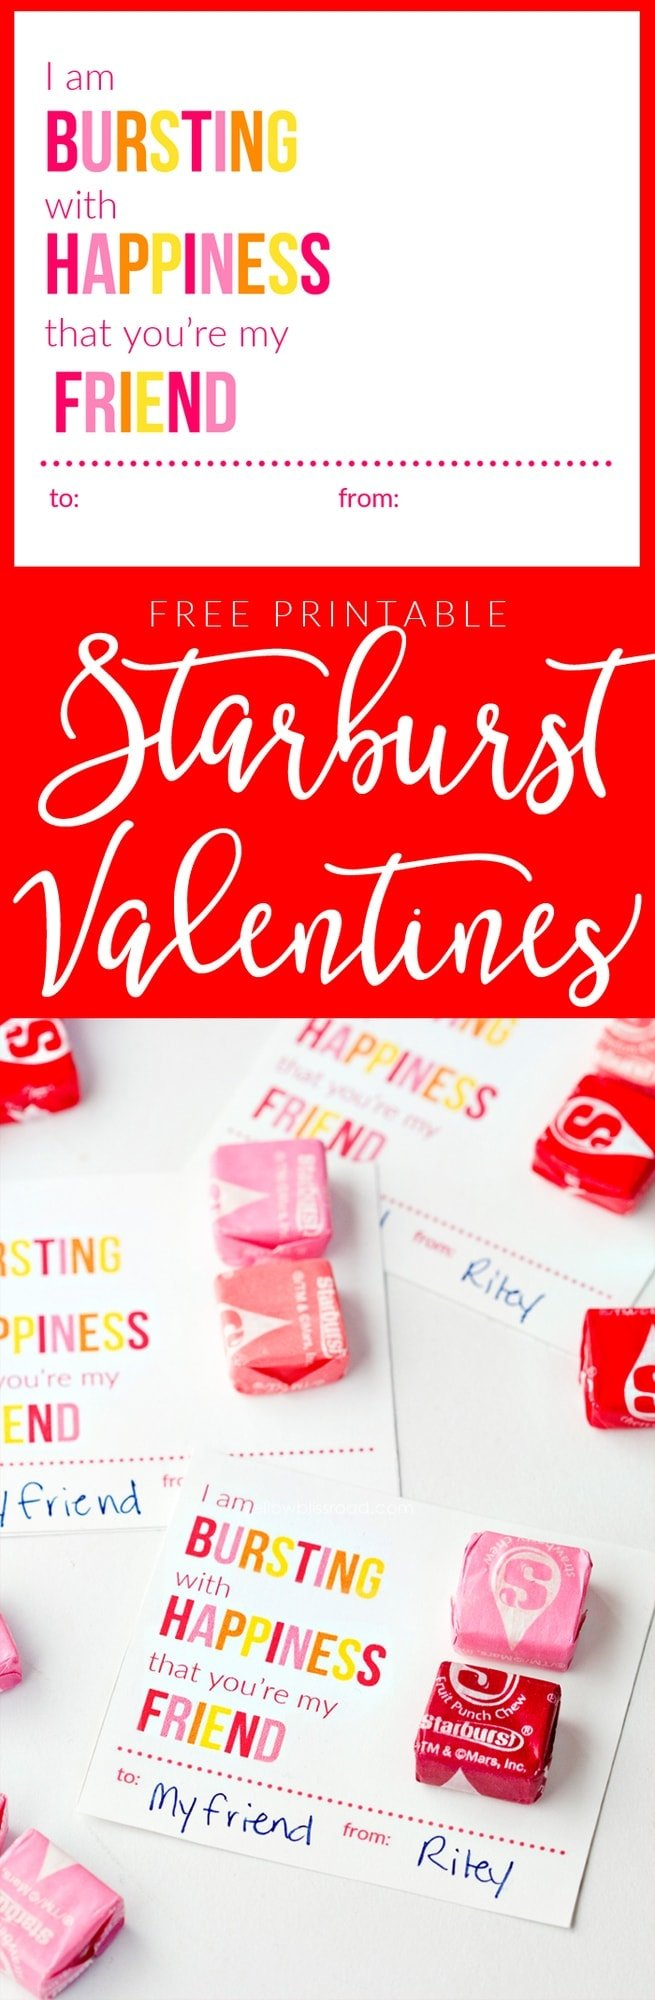 graphic regarding Starburst Valentine Printable referred to as Printable Starburst Valentine Playing cards - Yellow Bliss Highway